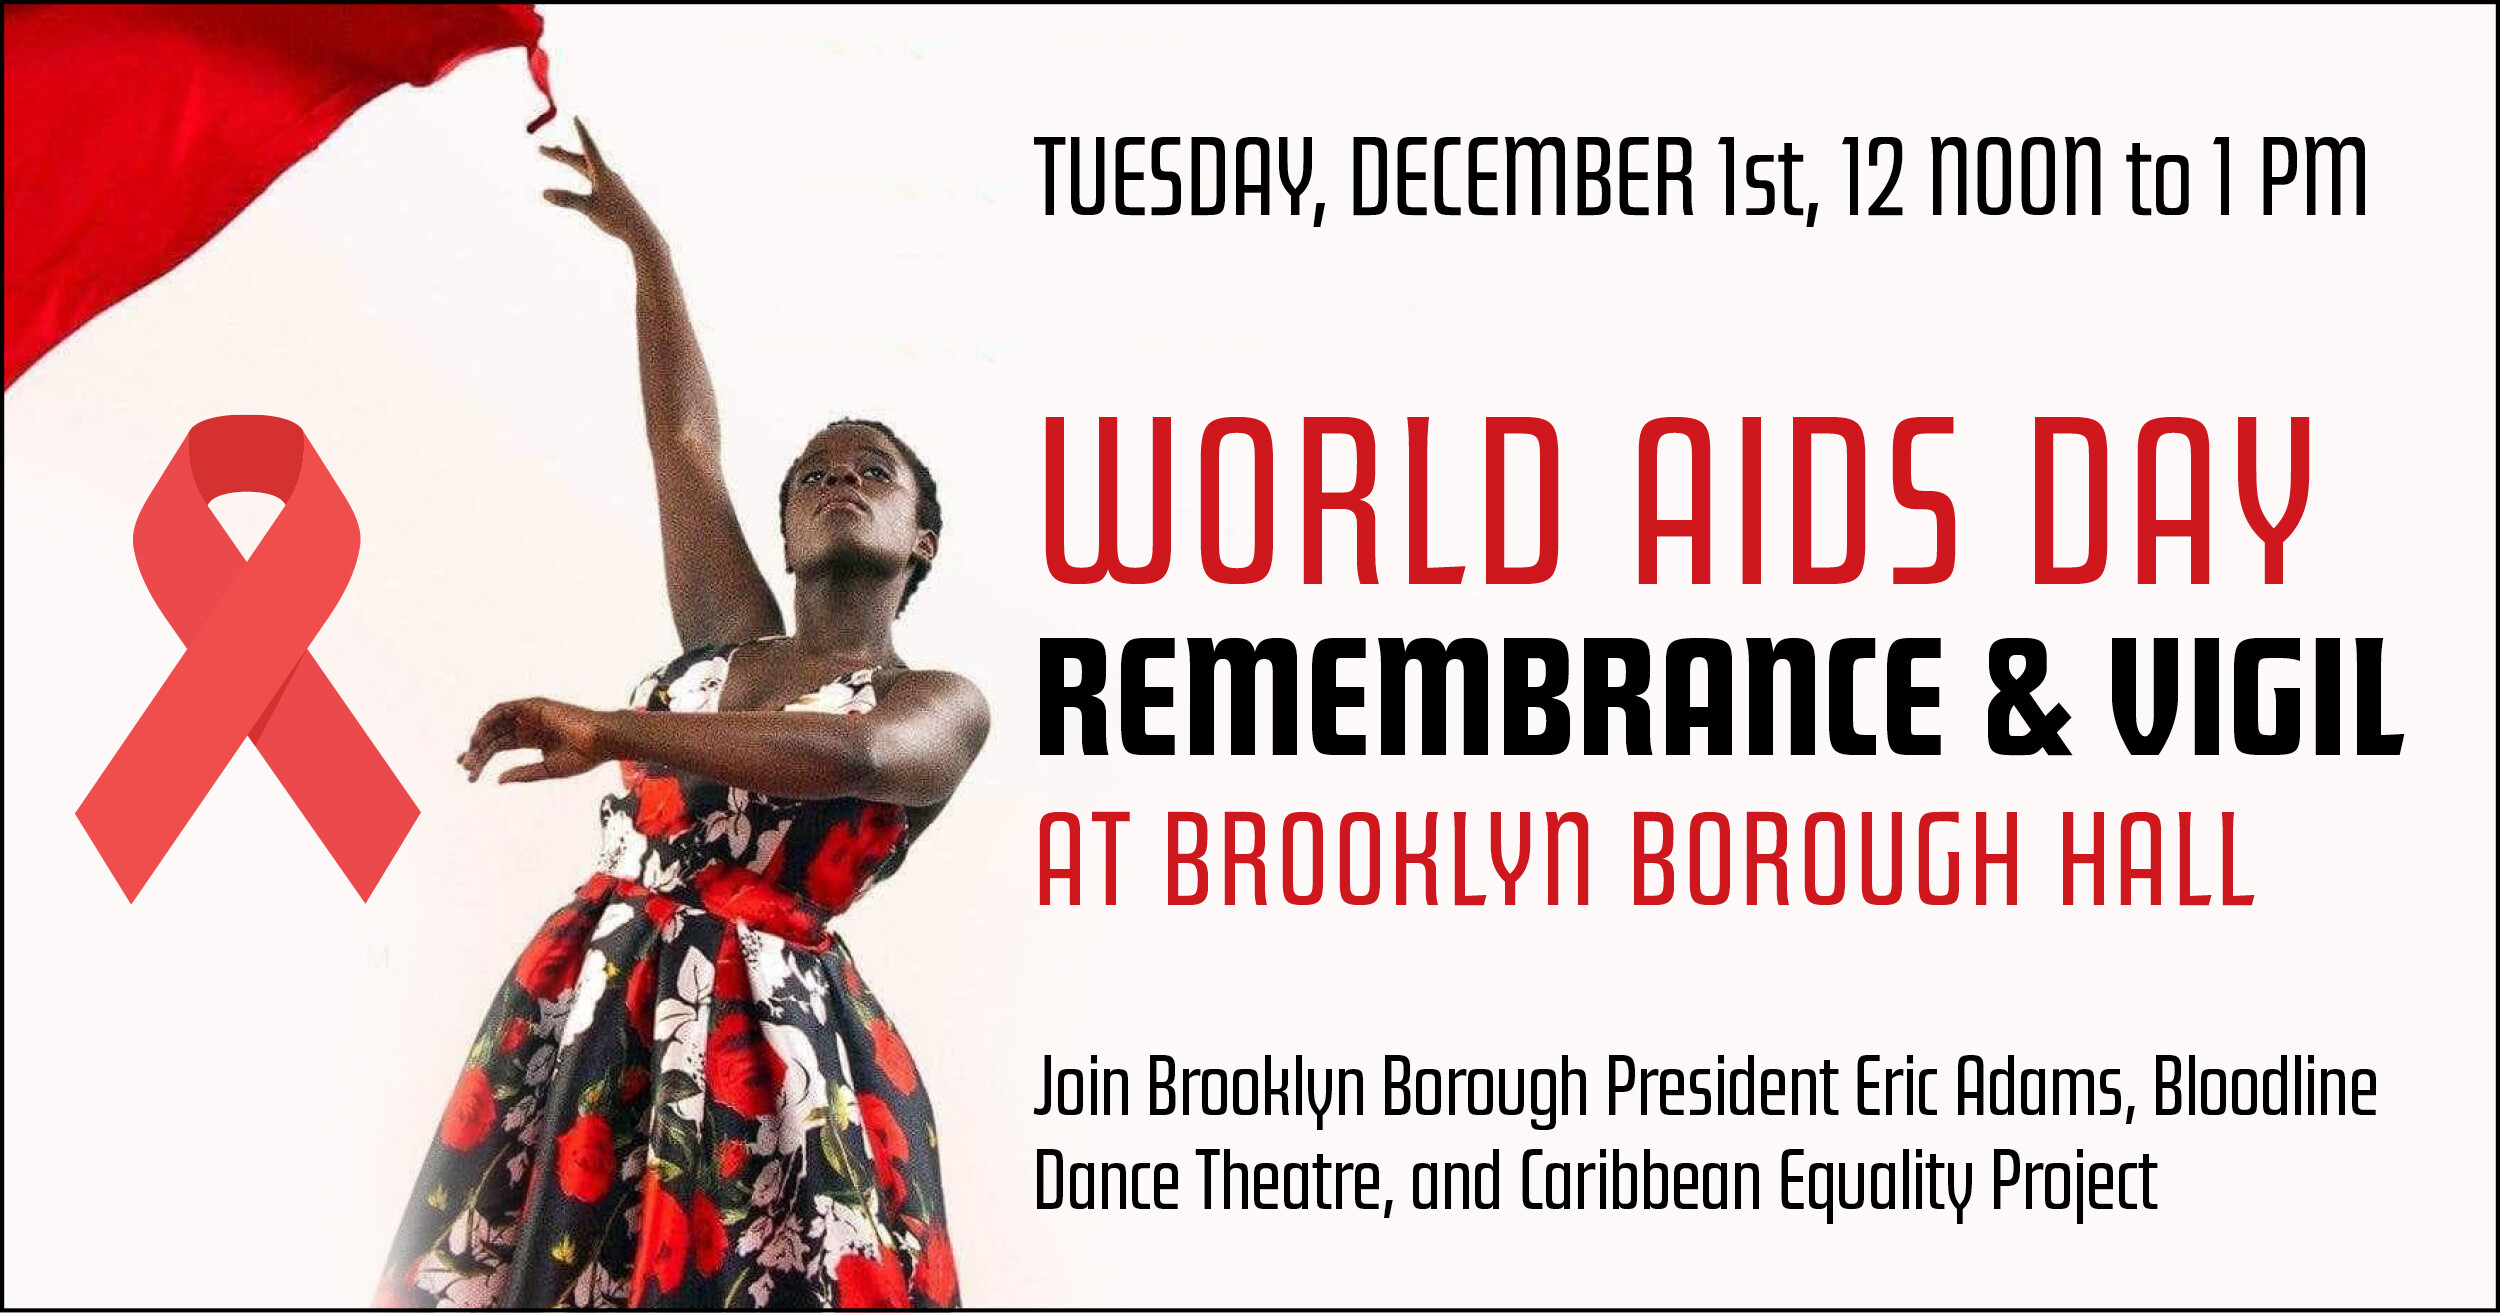 World AIDS Day Remembrance & Vigil